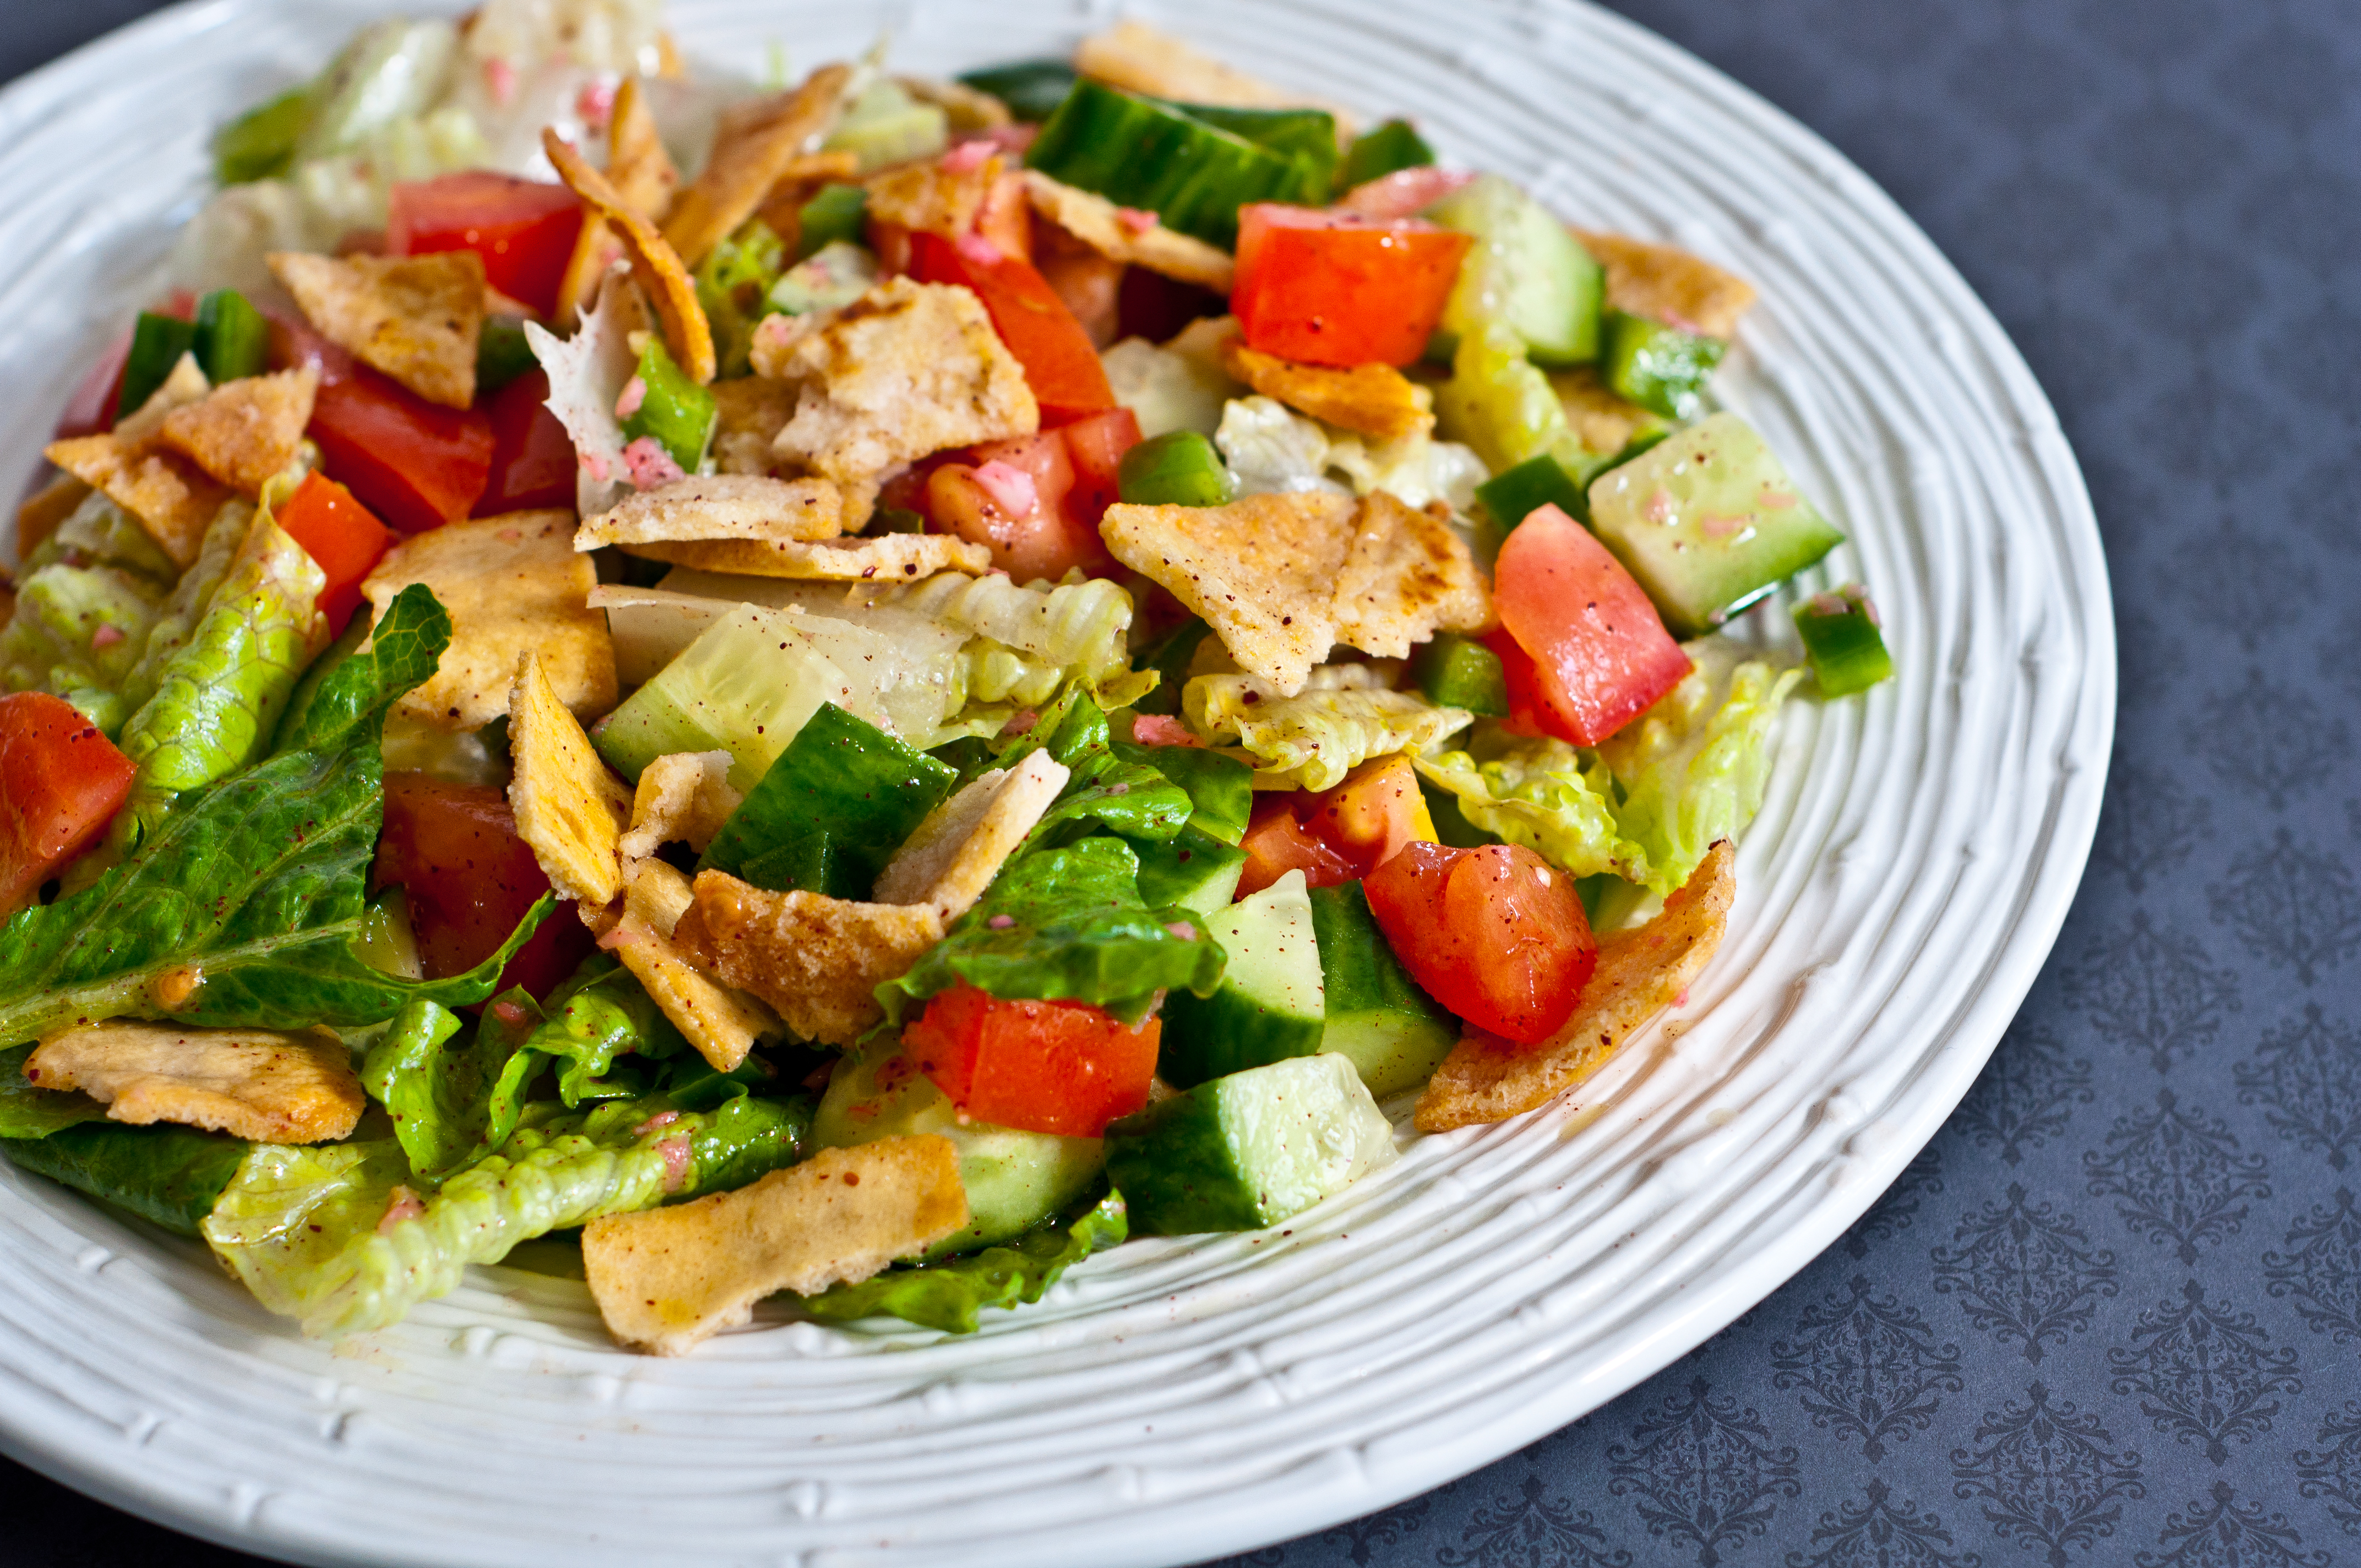 ... 2848 in I've Lost that Love and Feeling, and Lebanese Fattoush Salad